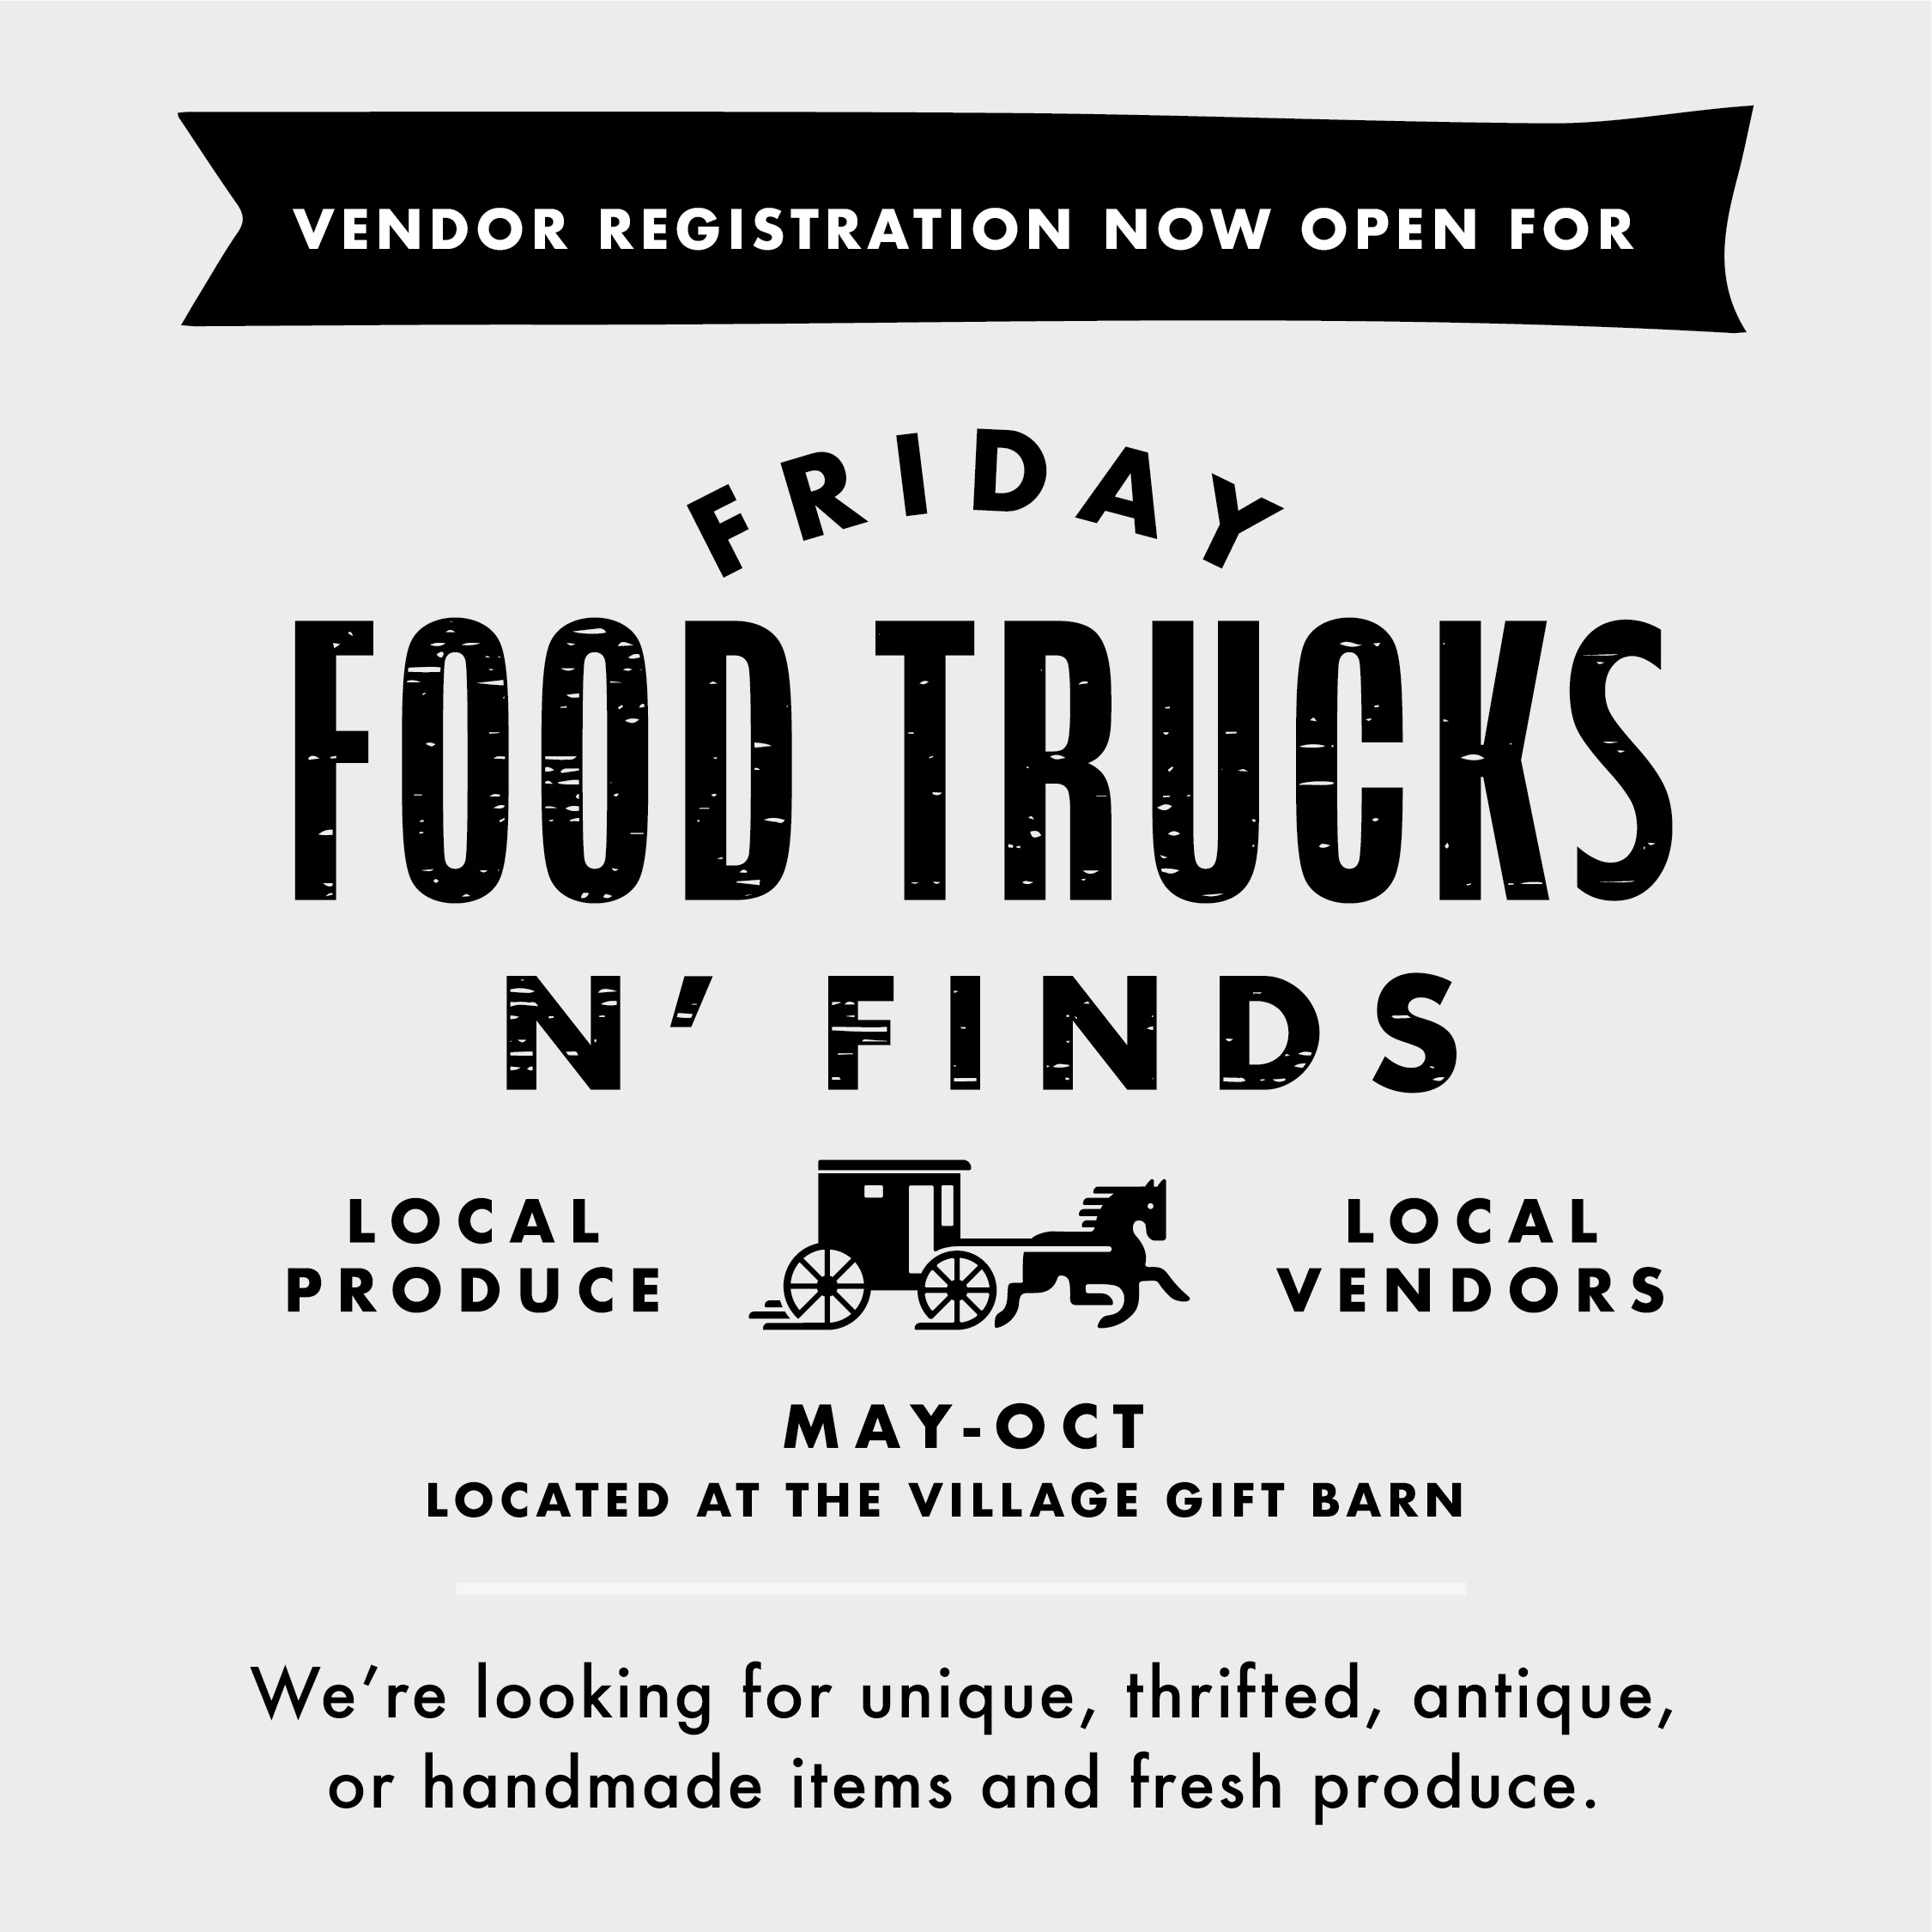 Food Truck Dates- (weather permitting) 11am-7pm:  -May 3 & 17  -June7 & 21  -July 5 & 19  -August 2 & 16  -September 20  -October 4 &18  Vendor Fair Dates - (weather permitting) - 11am-??:  -June 21  -July 19  -August 16  -September 20  -October 18    **To apply for Food Truck space or Vendor space please email Brittany@oldeberlinvillage.com